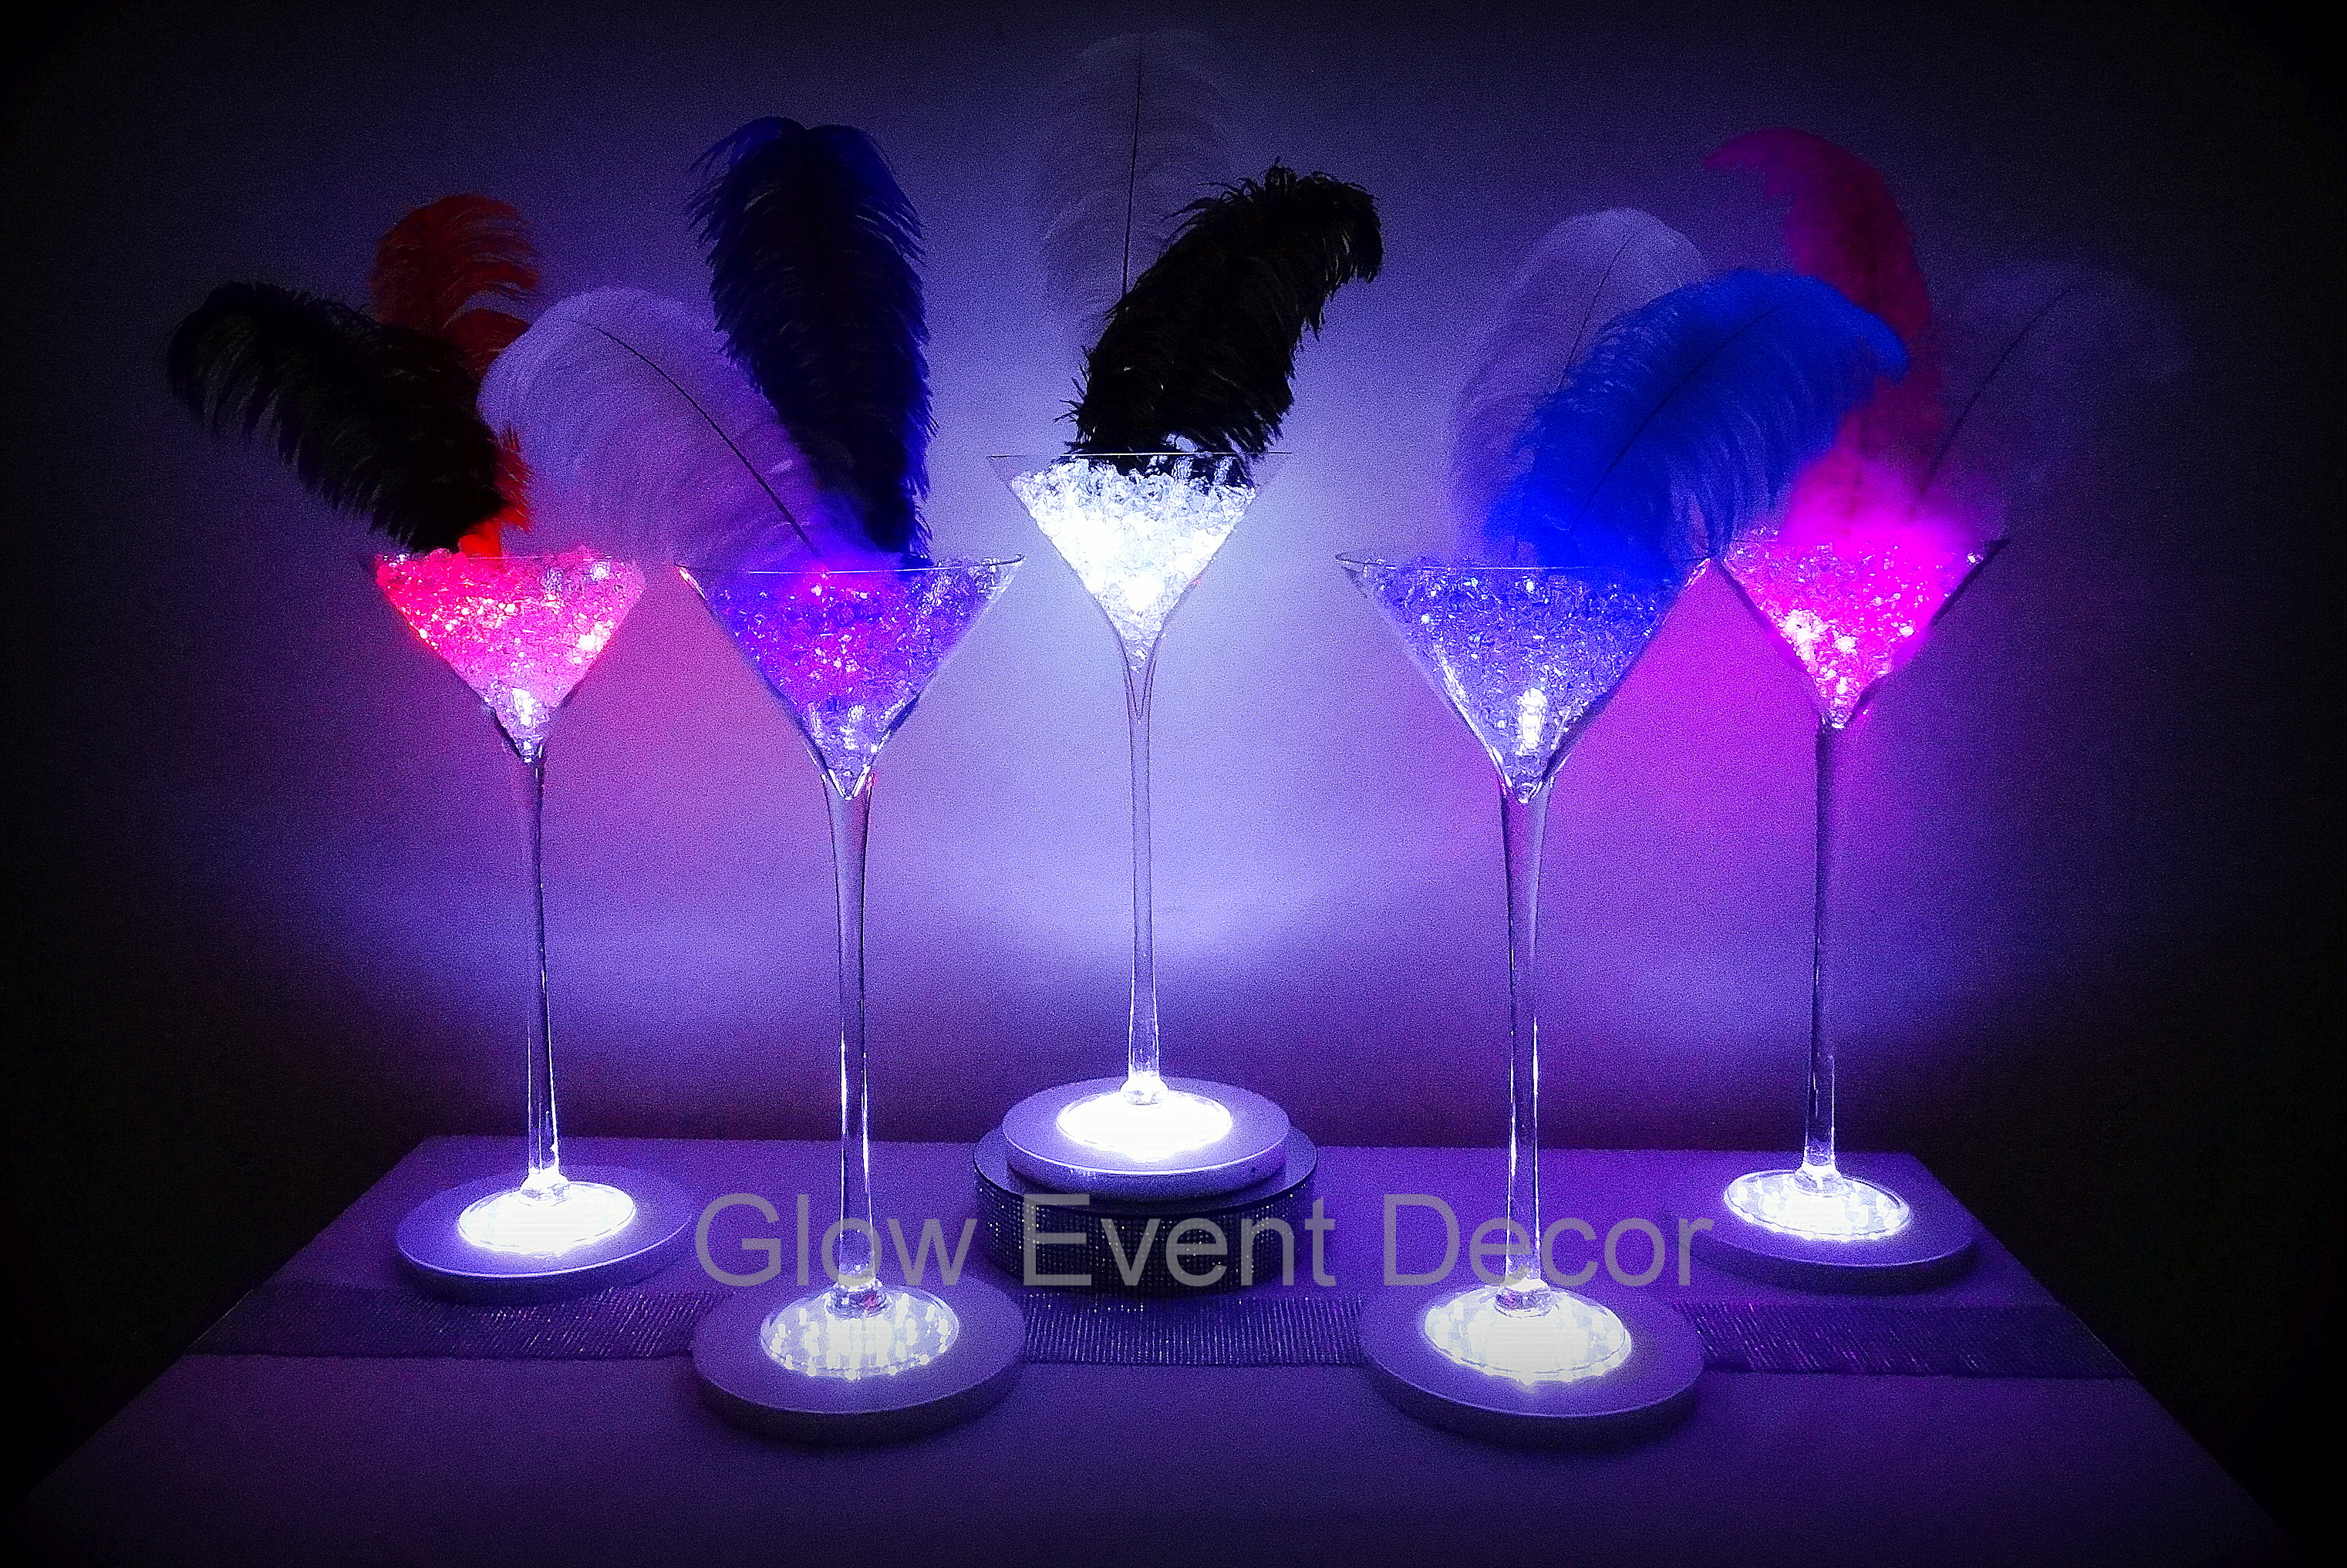 selection of LED giant martini glass table decoration centrepieces with LED light bases and ostrich feathers for hire in adelaide, glow event decor